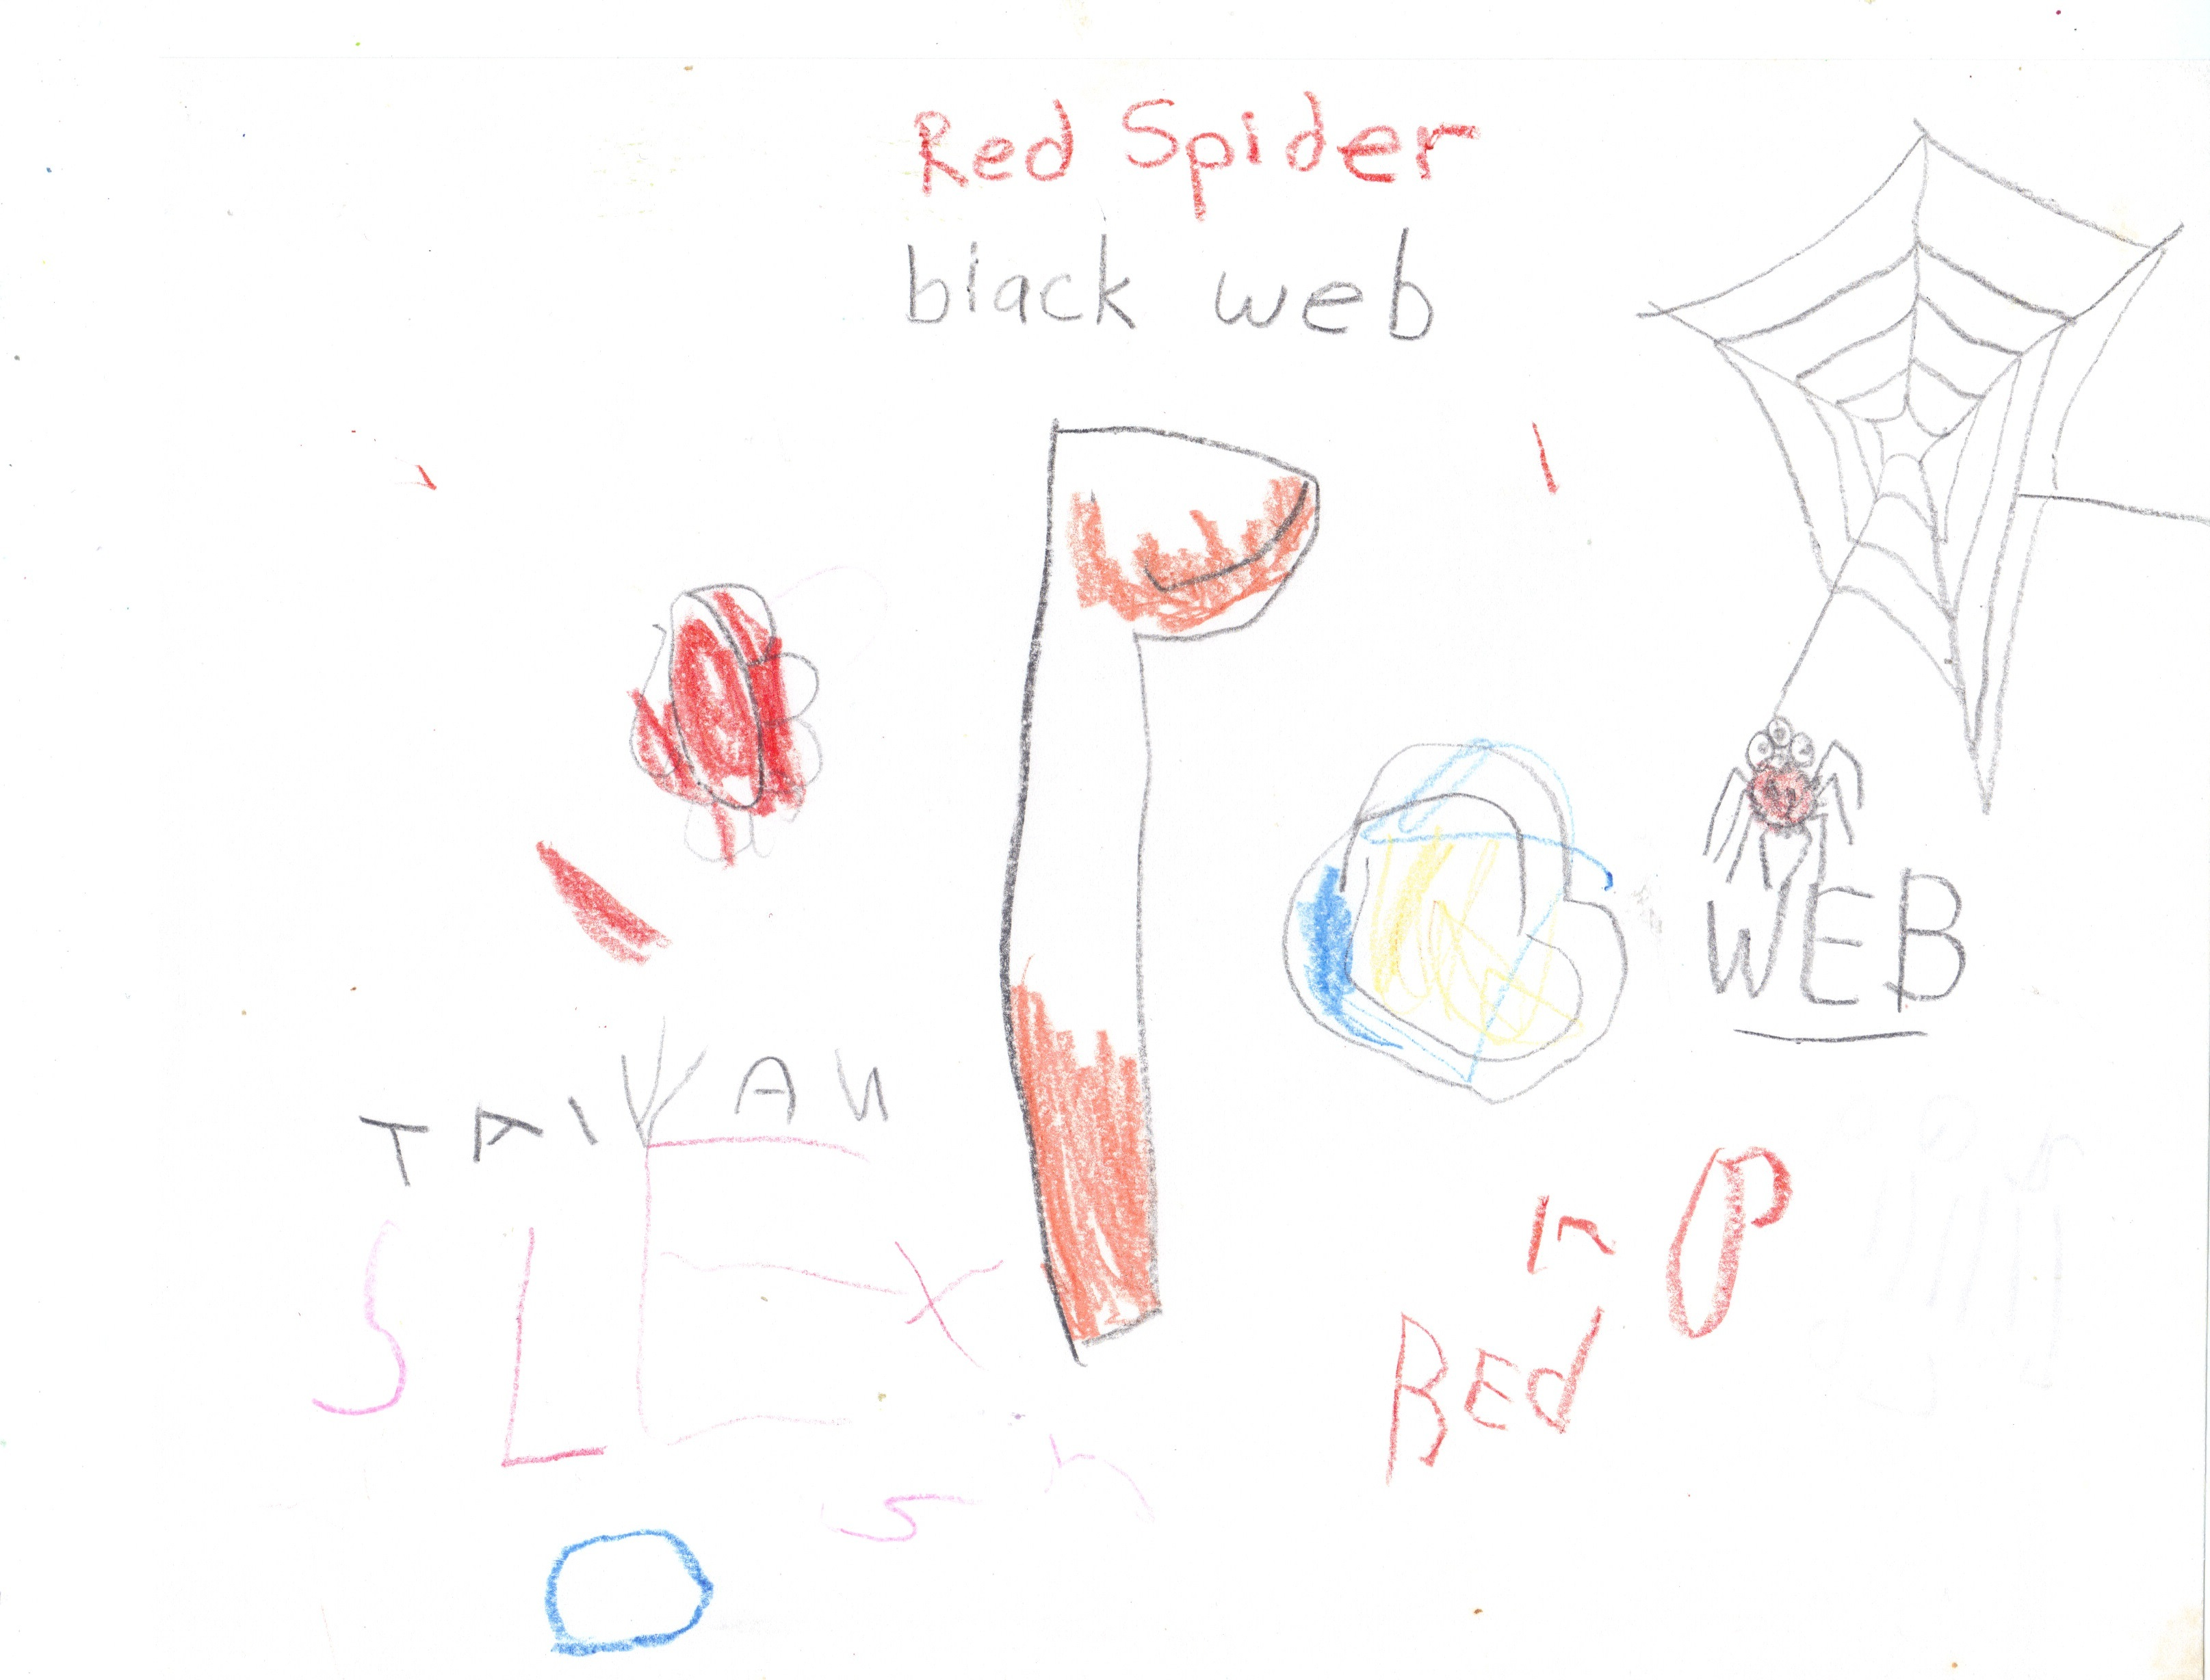 Red Spider, Black Web